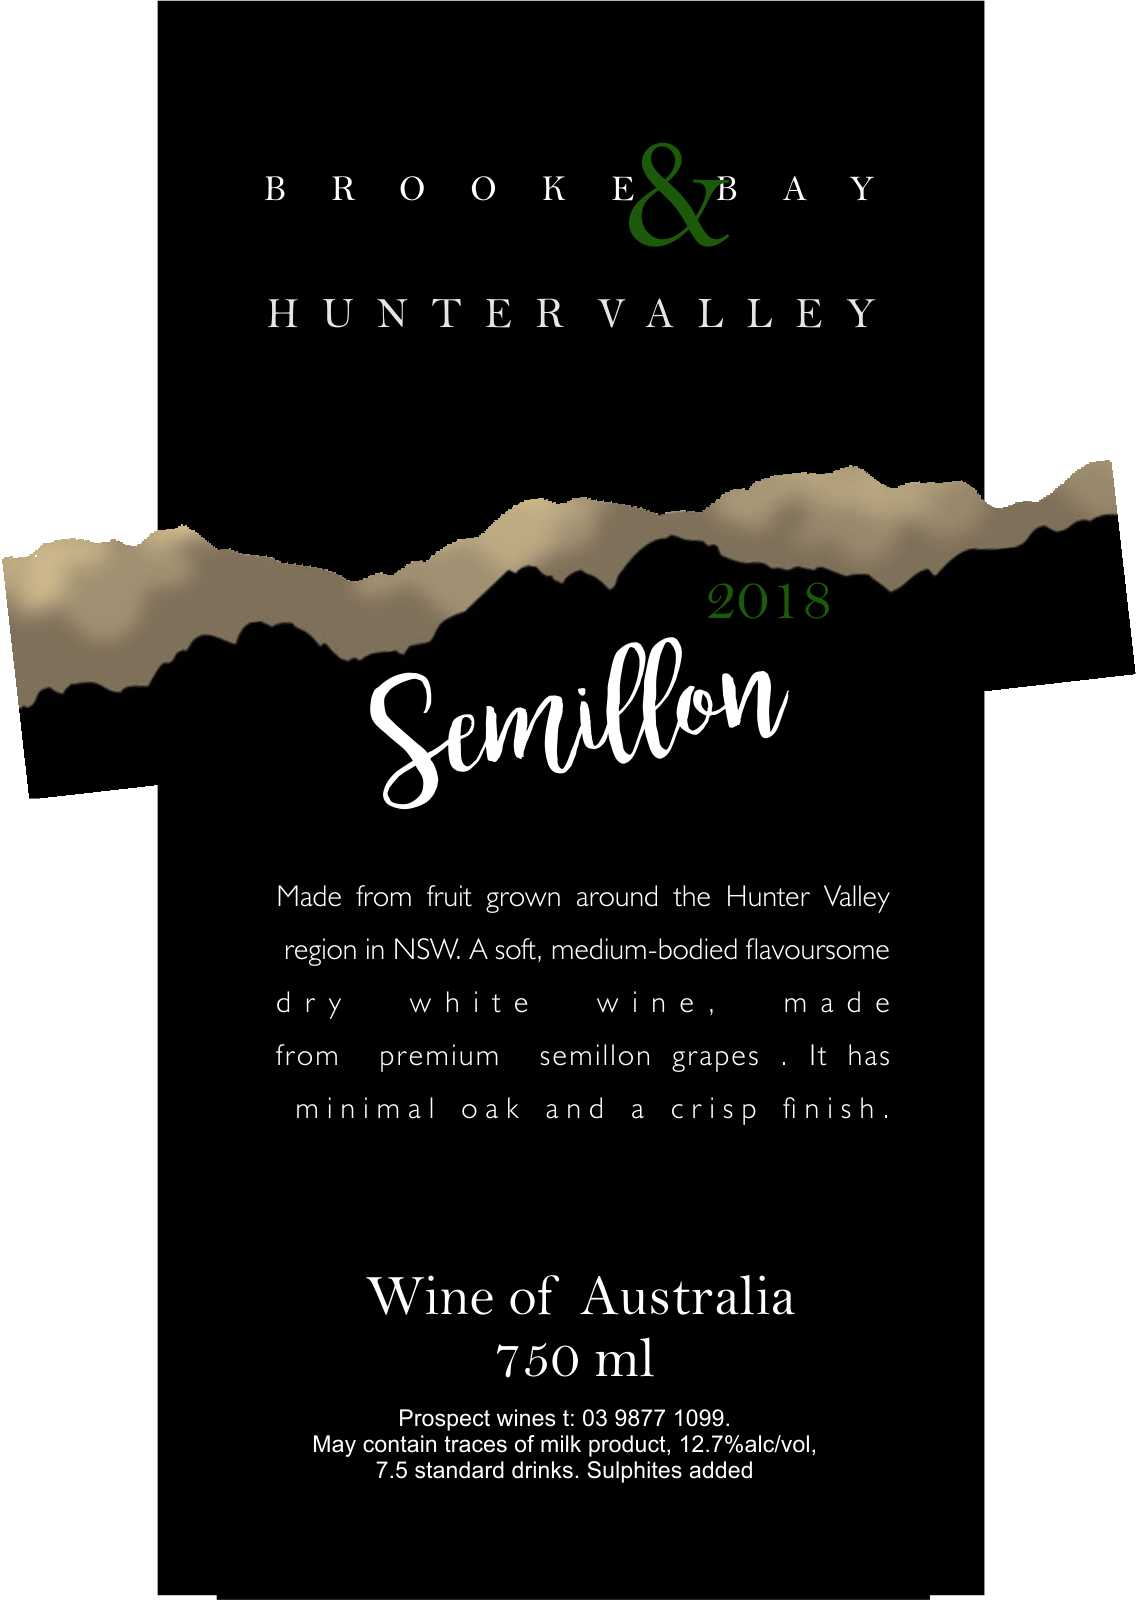 HUNTER VALLEY SEMILLON 2018